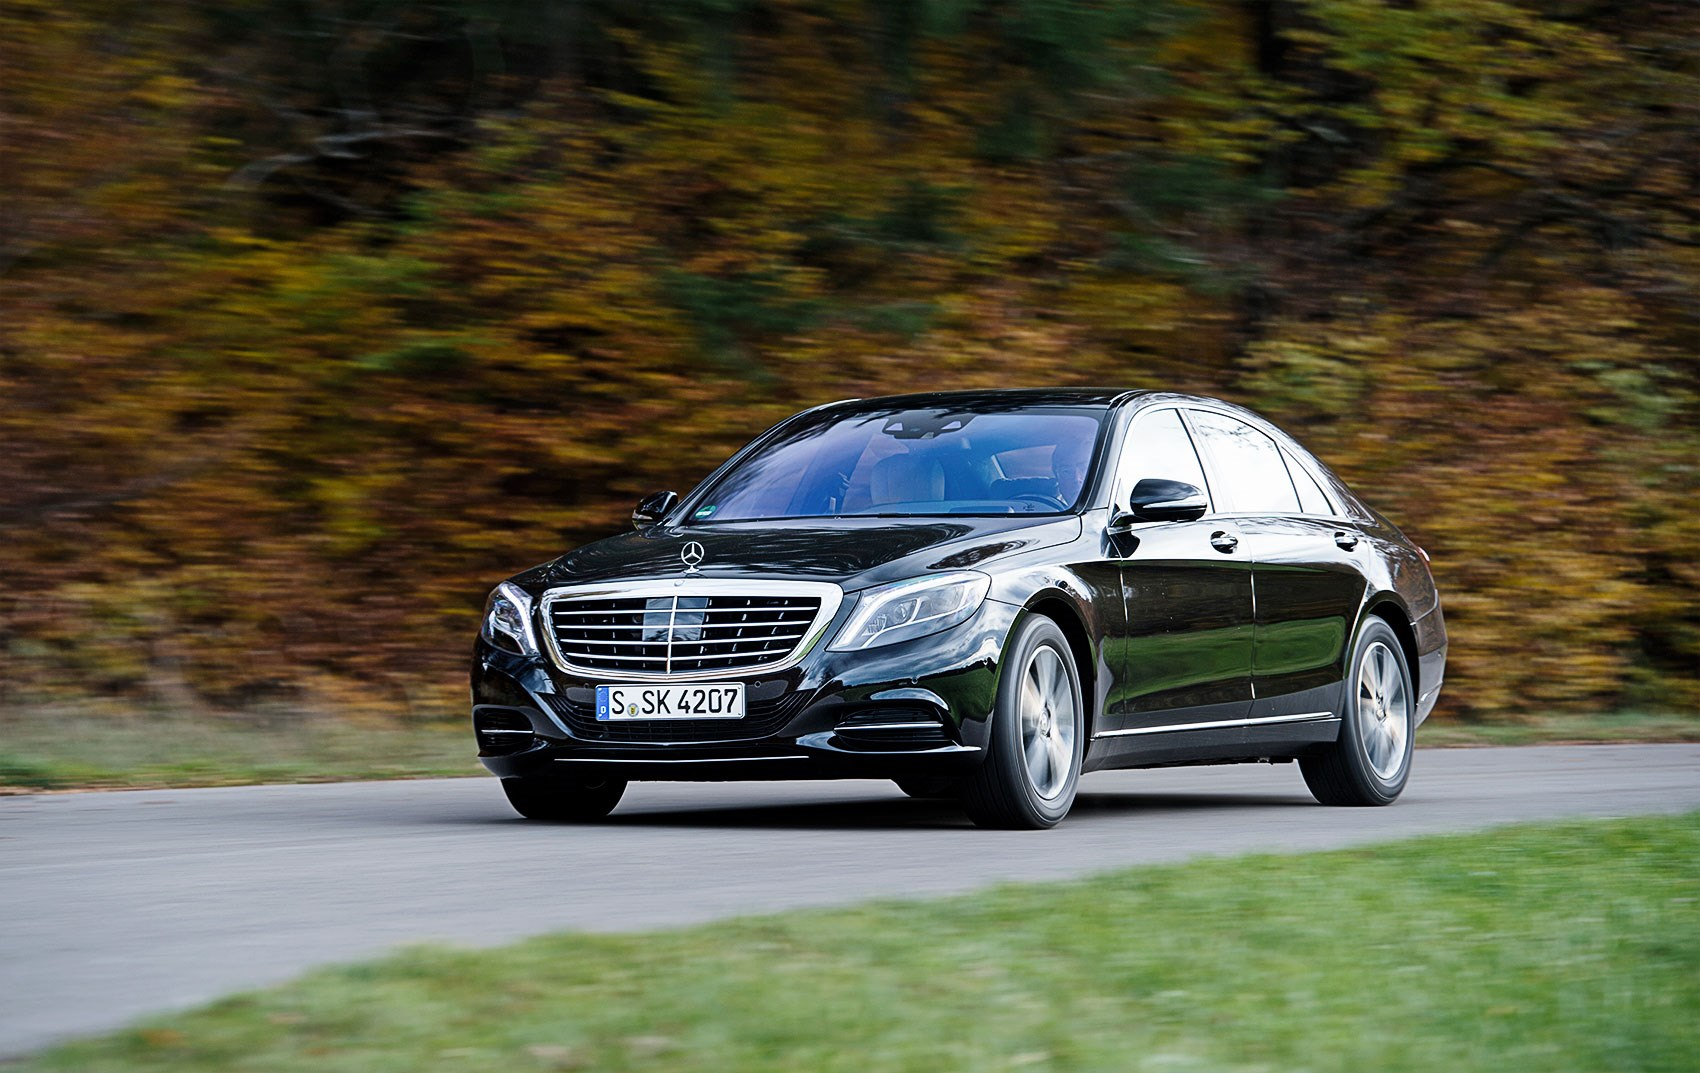 Car S Merc S500 Plug In Getting To Know You